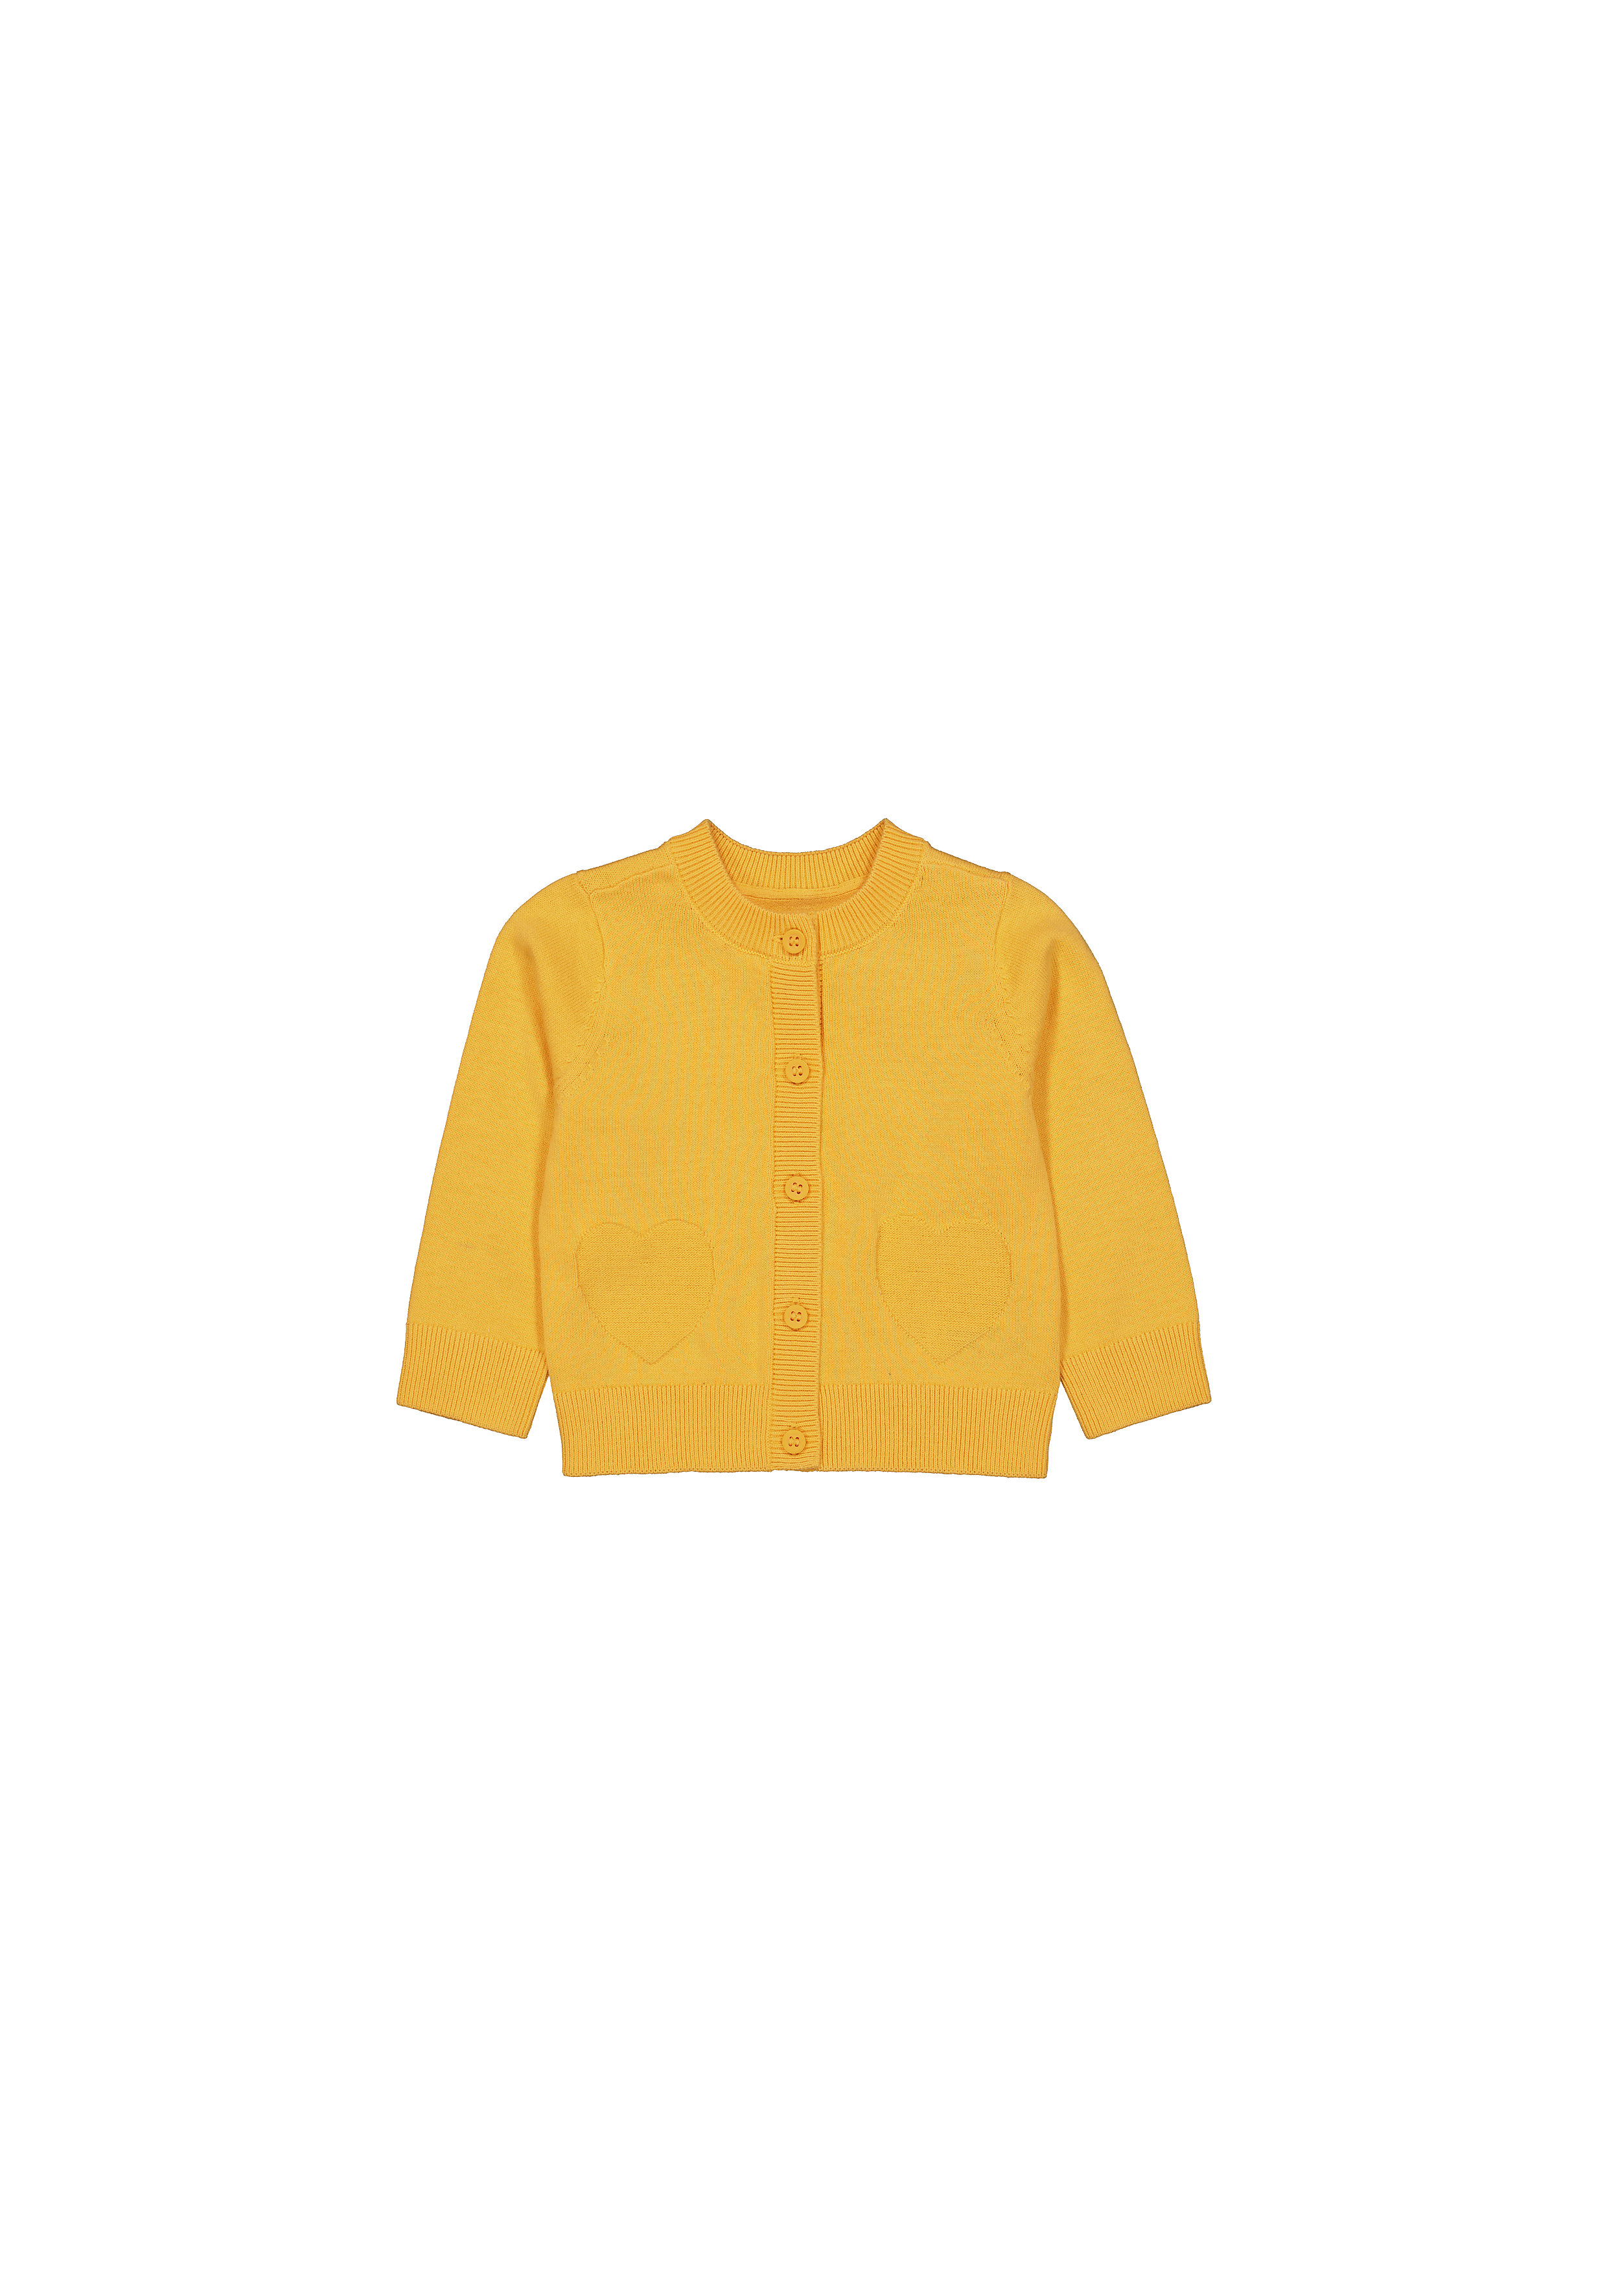 Mothercare | Girls Full Sleeves Sweaters  - Mustard